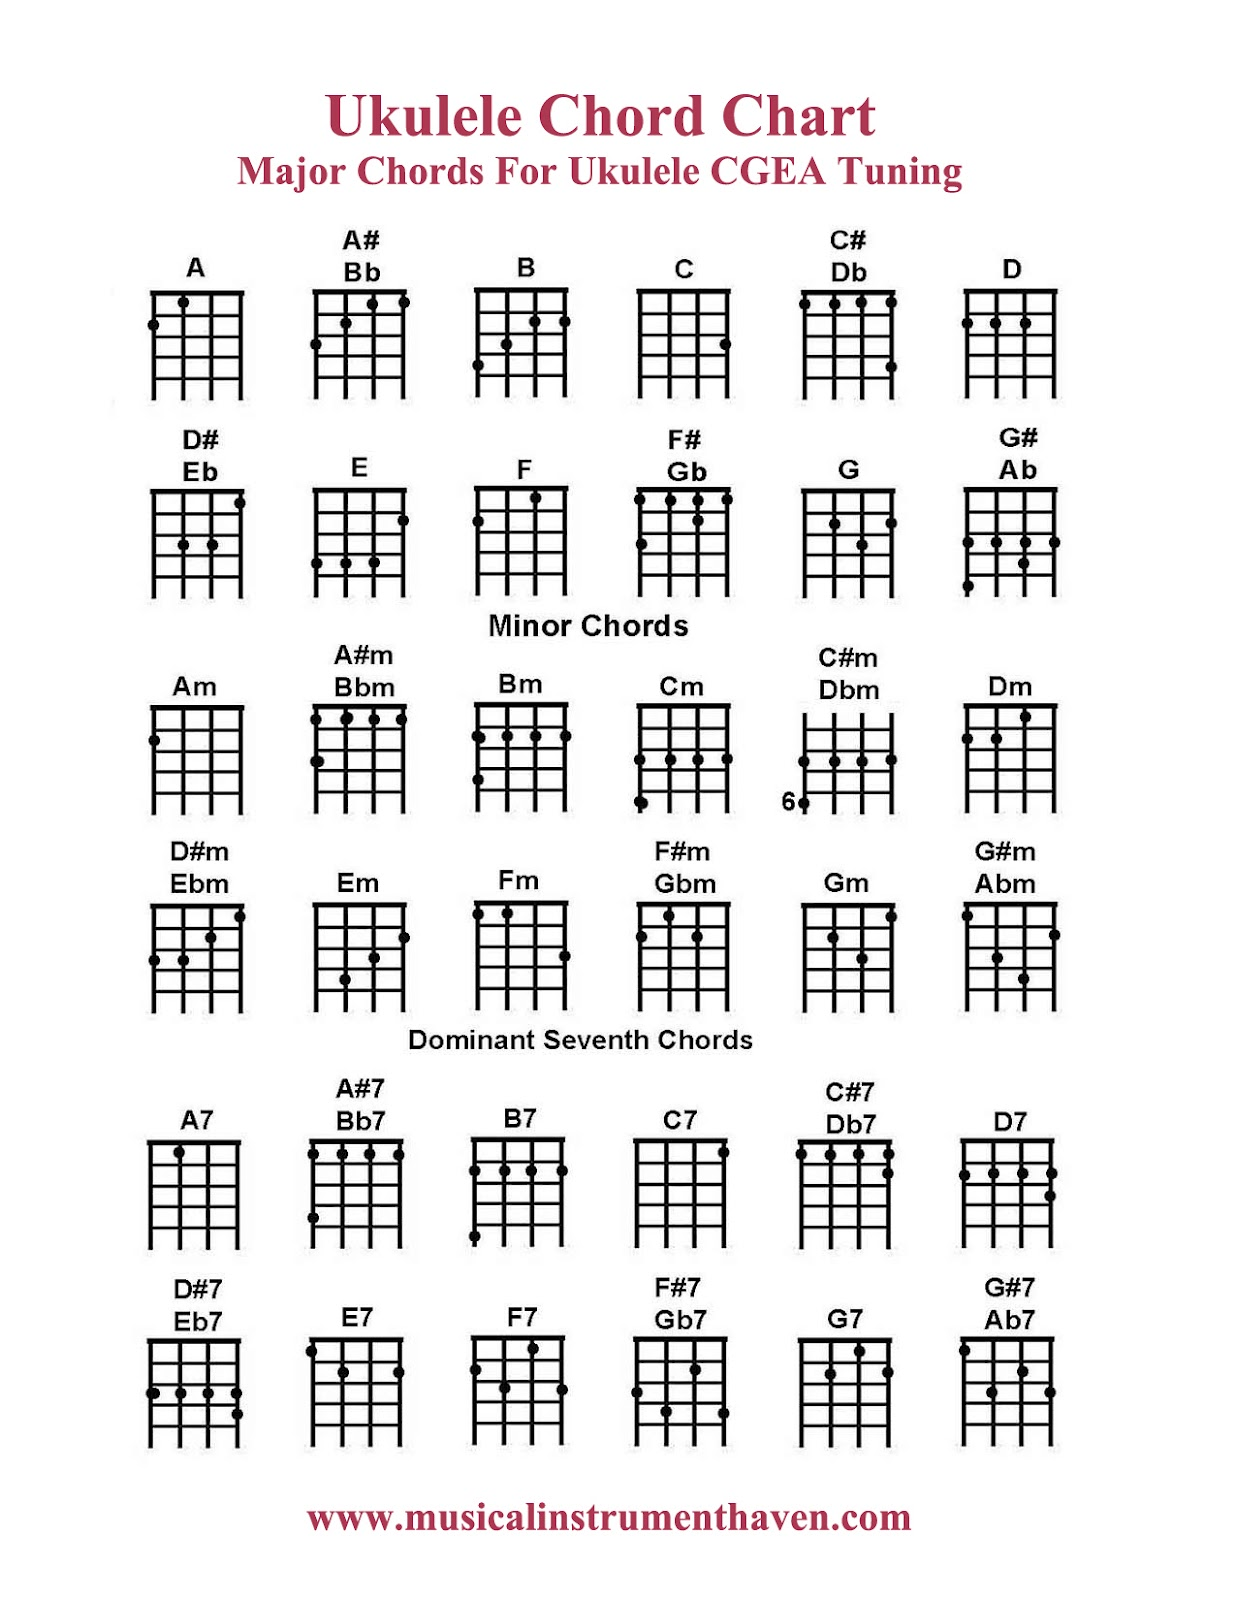 Ukulele Chords Chart Beginner Ukulele chord chart - major